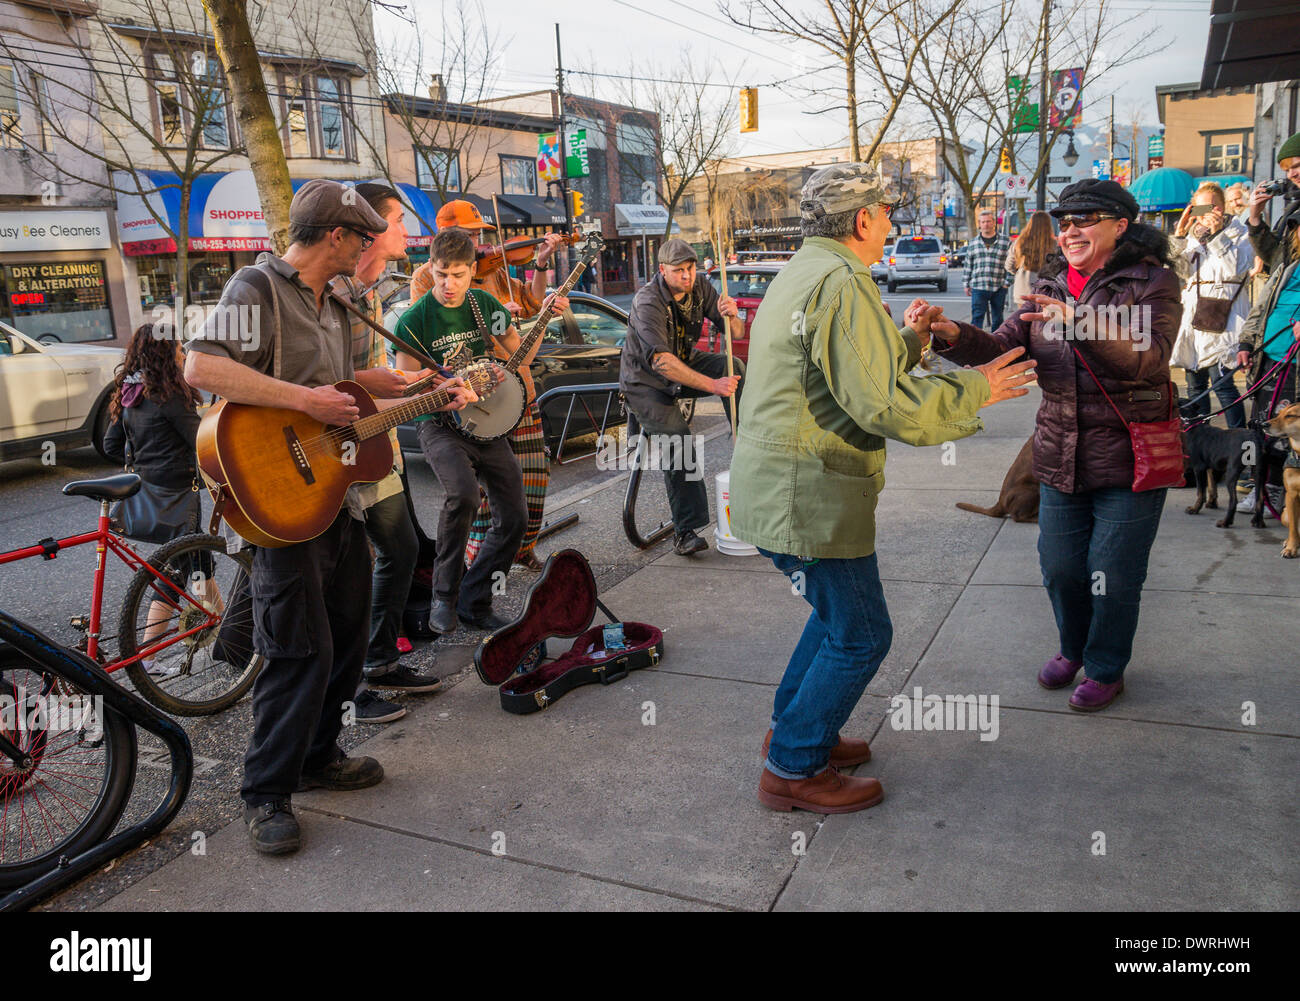 Couple dancing on the street to music of buskers, Commercial Drive, Vancouver, British Columbia, Canada. - Stock Image